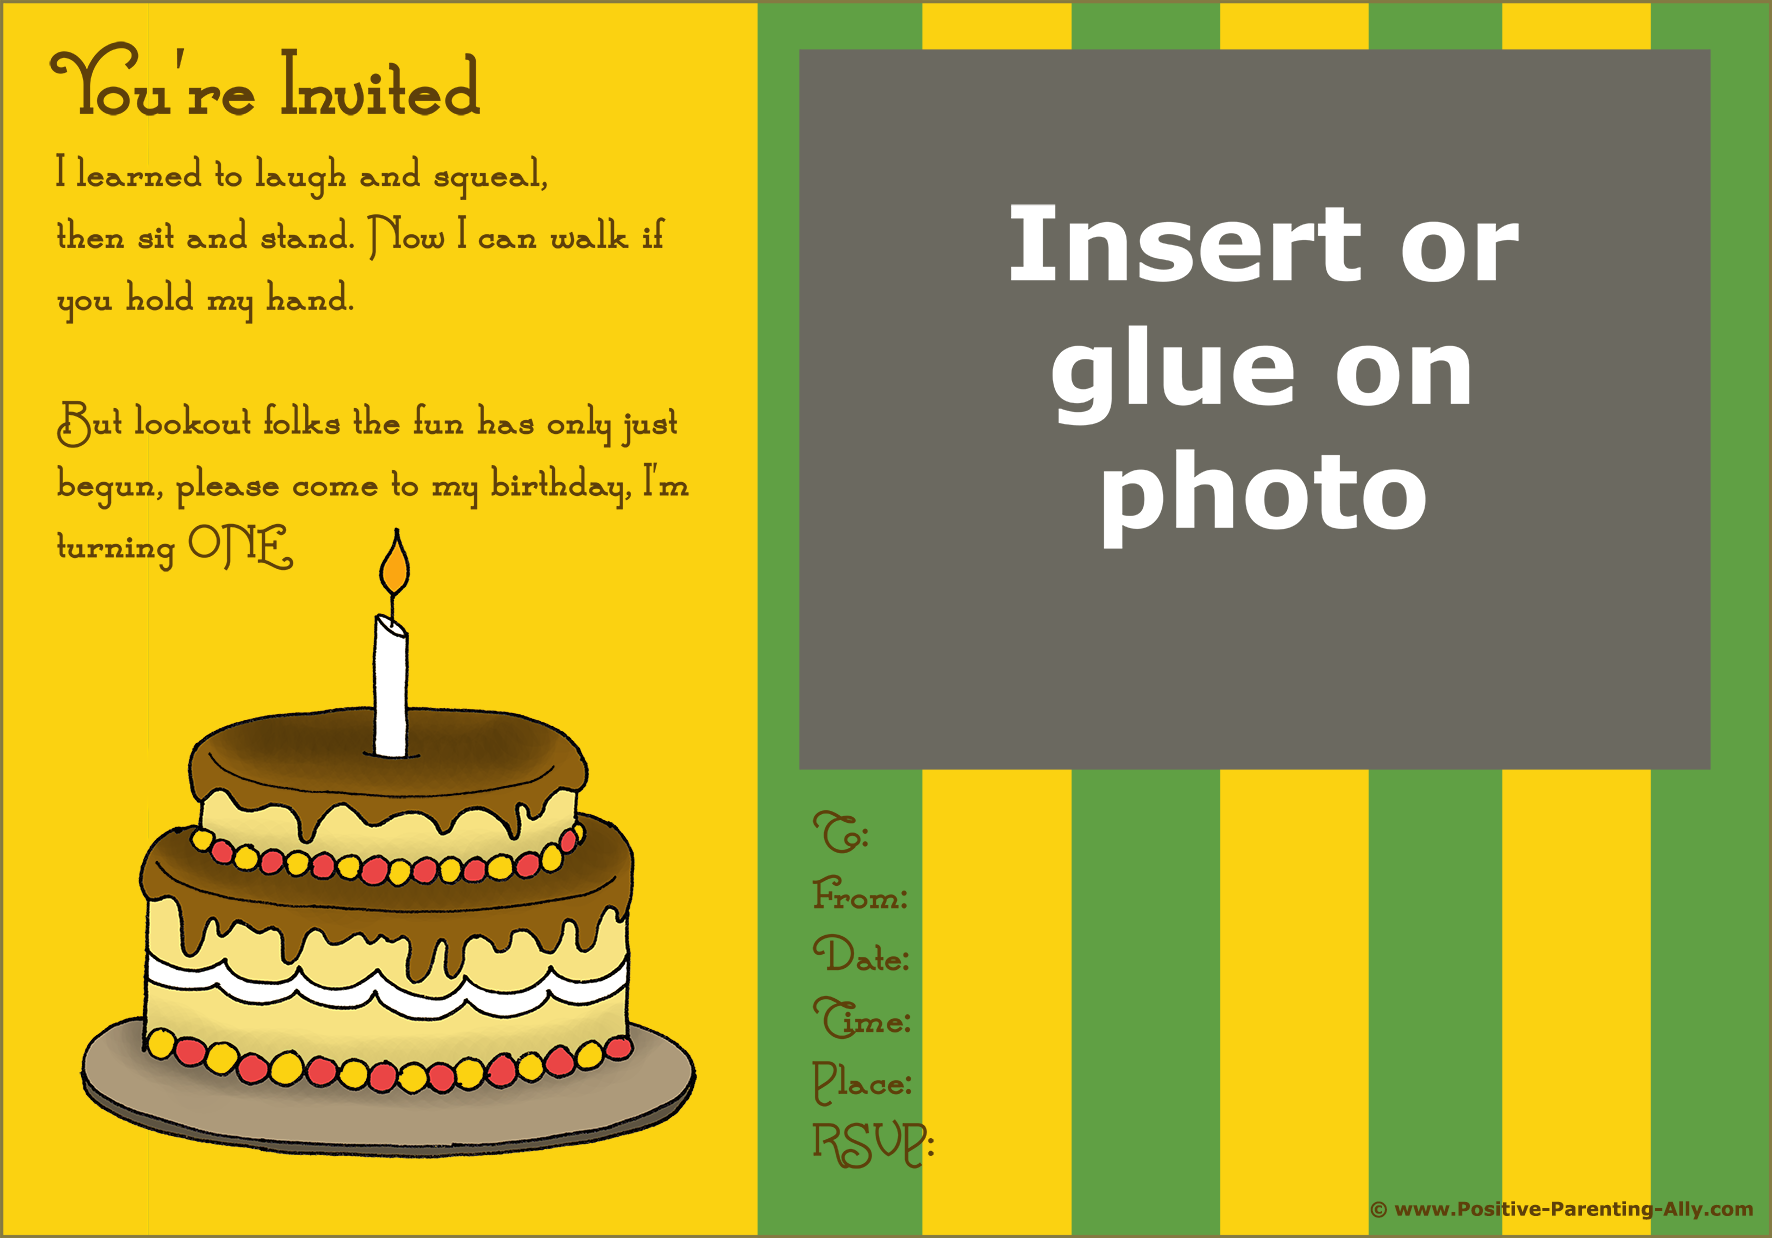 Modern retro first birthday invitation: birthday cake with one candle.